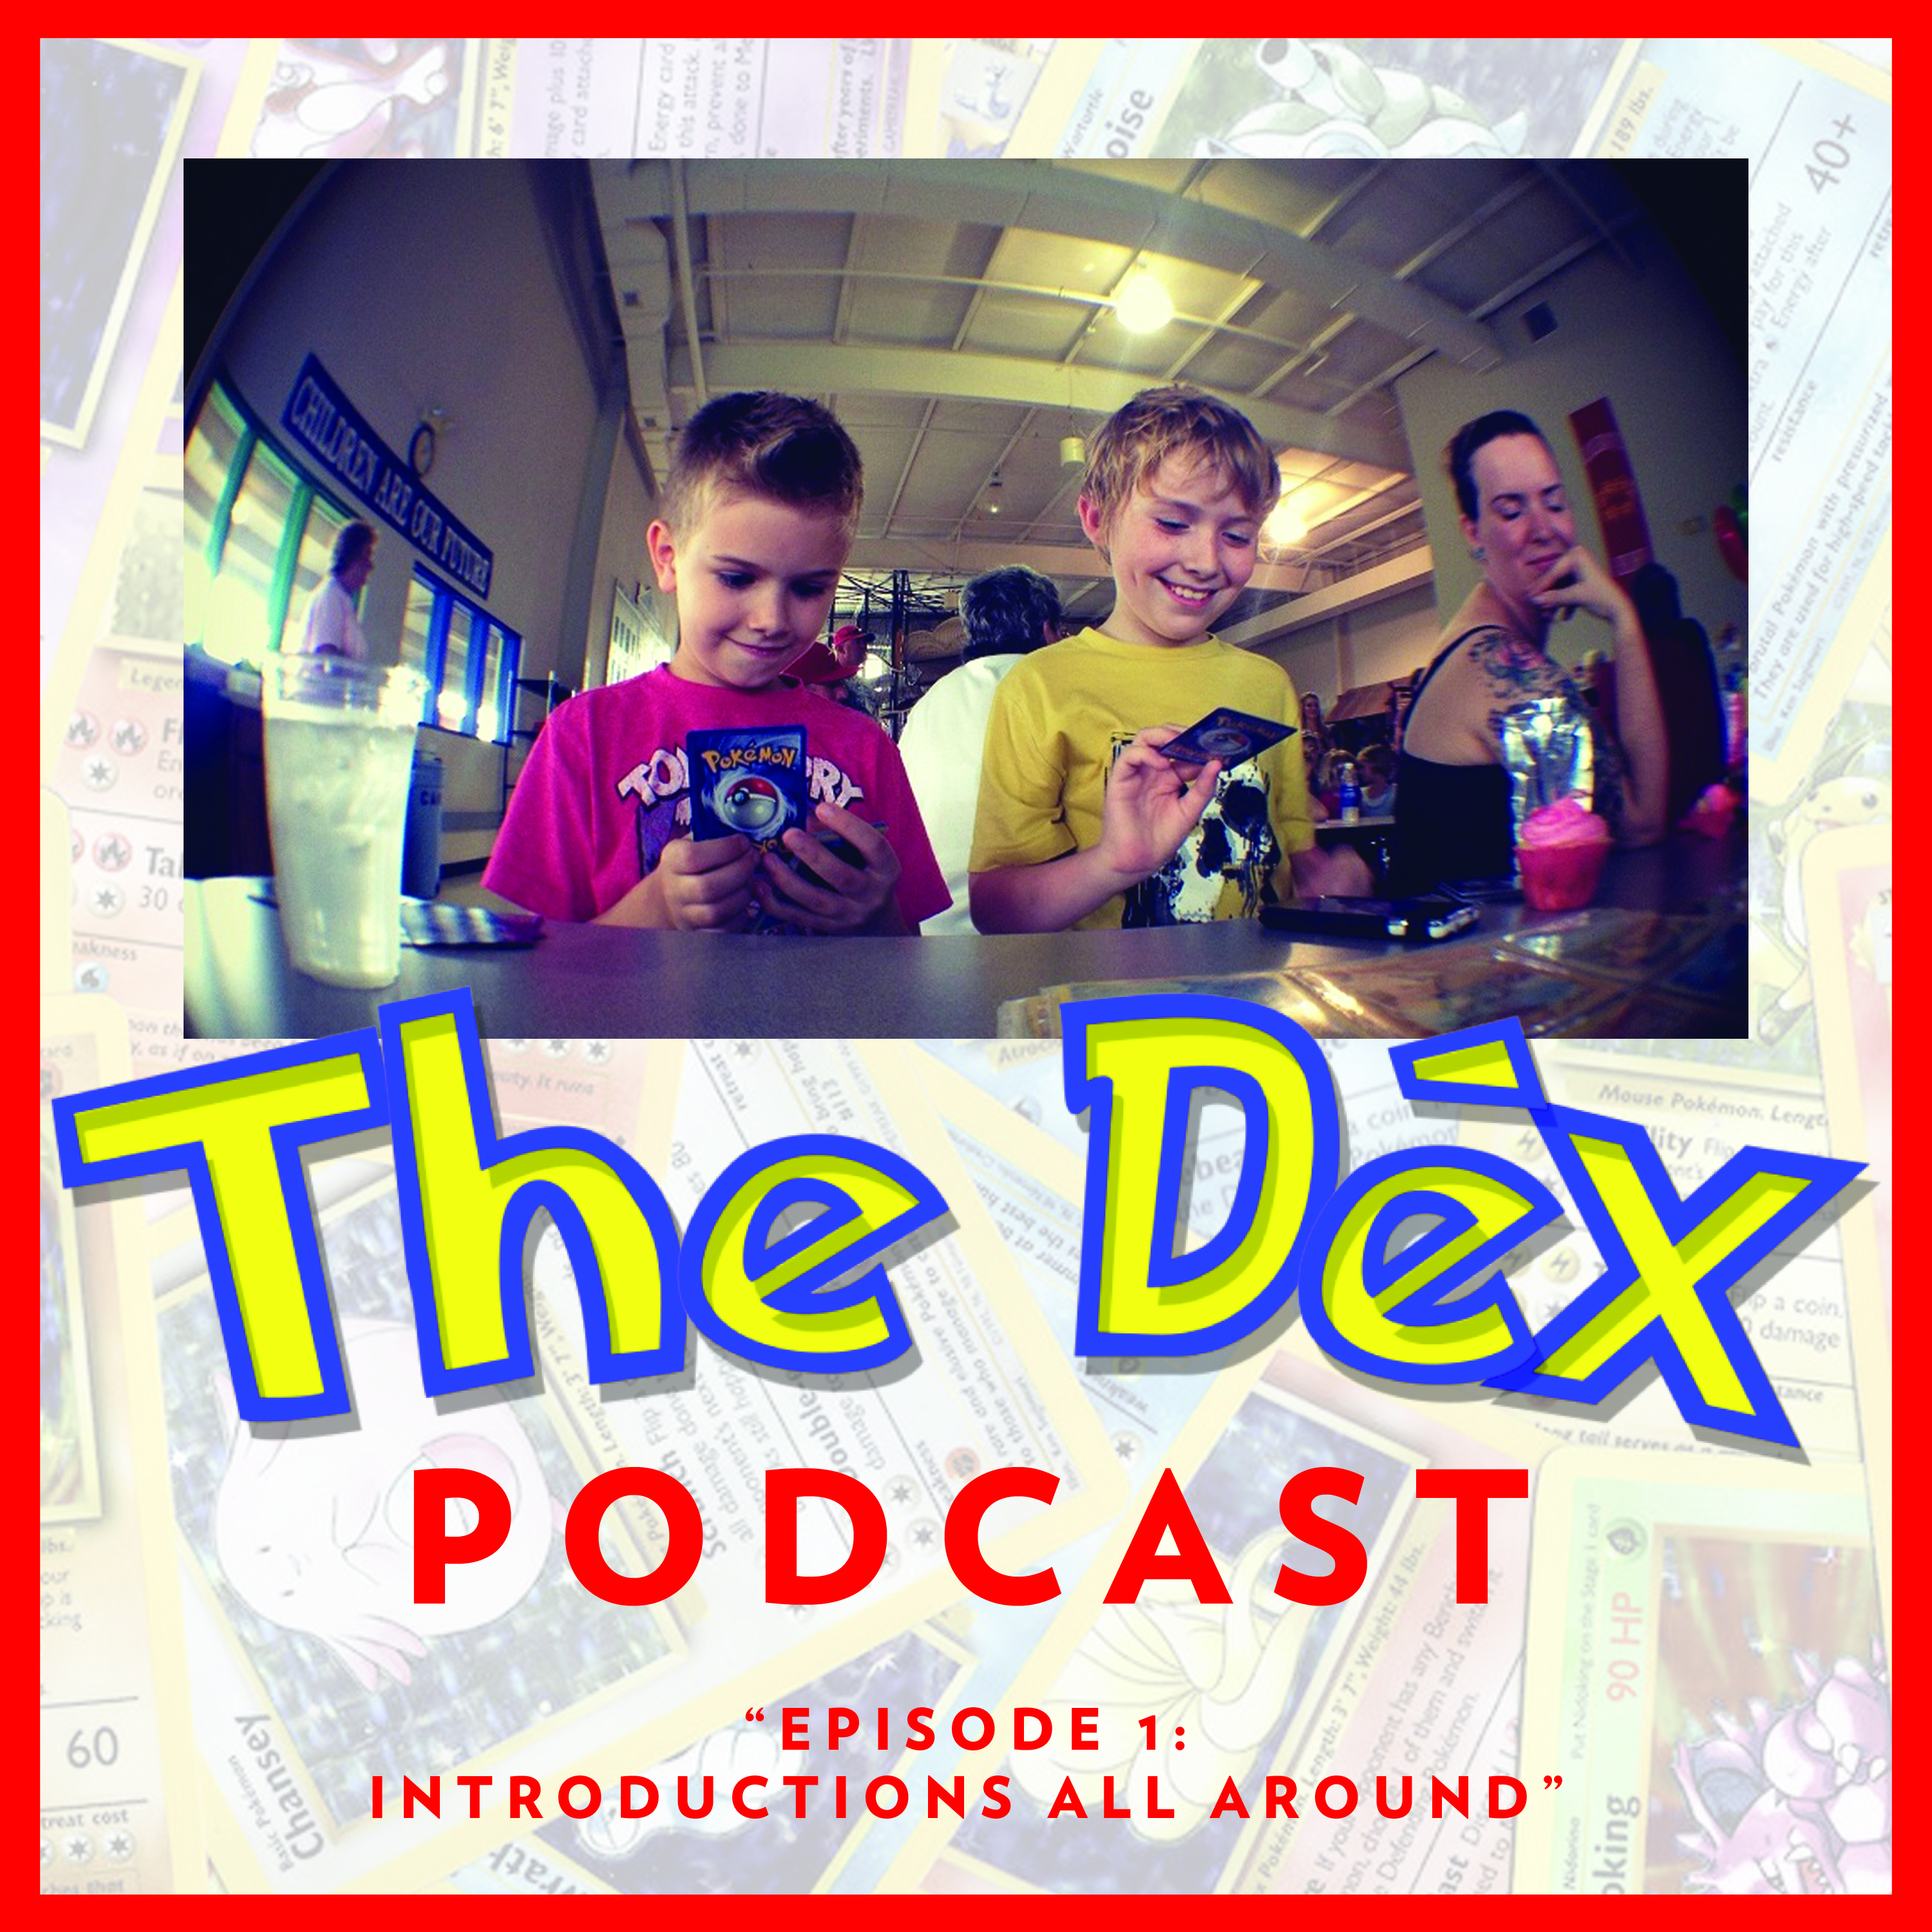 The Dex! Podcast #1: Introductions All Around!